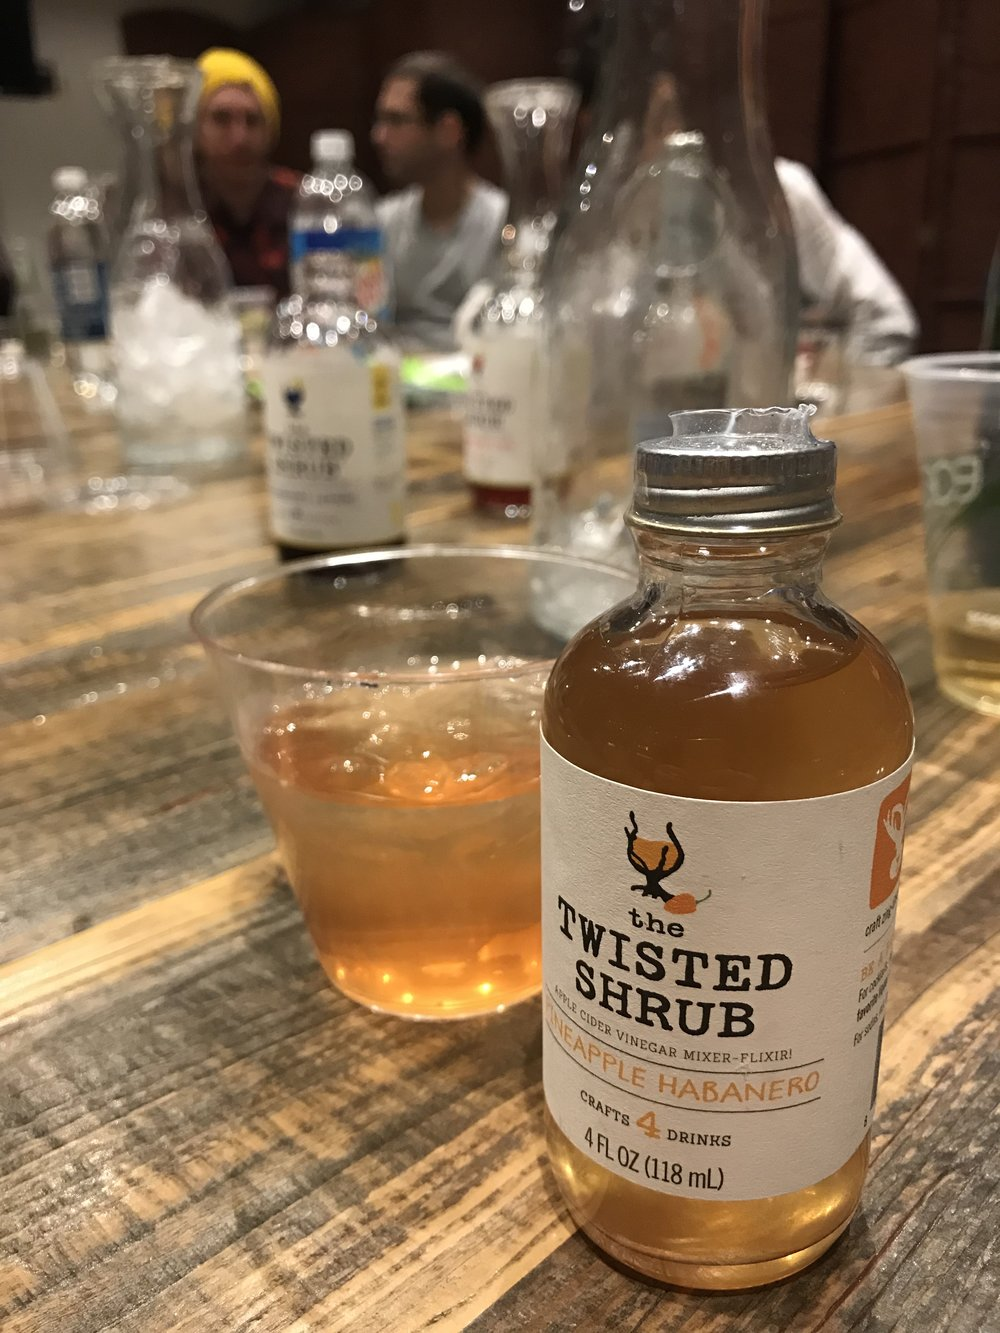 Pineapple Habanero shrub & whiskey = my favorite cocktail combo of the evening